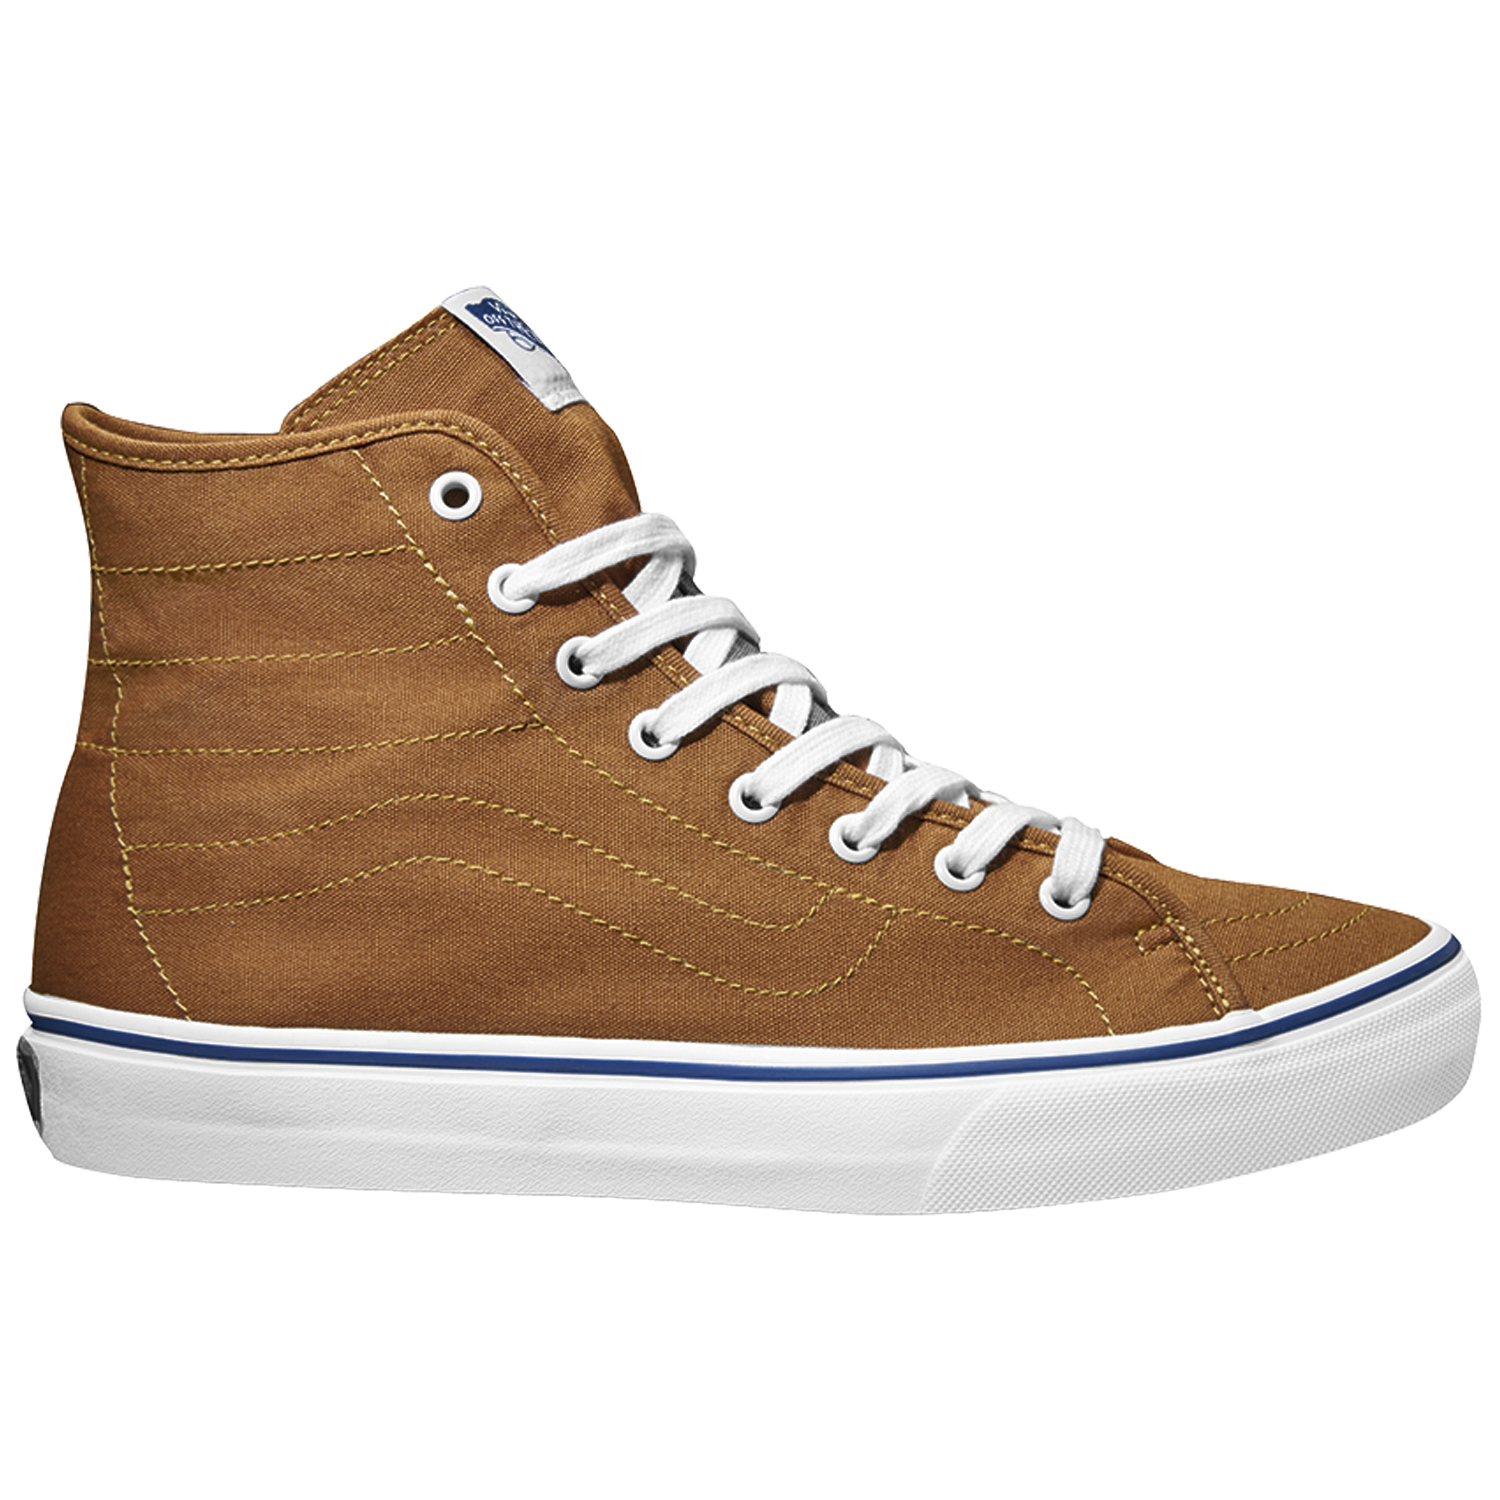 vans-sk8-hi-decon-canvas-cathy-spice-true-white-119-90